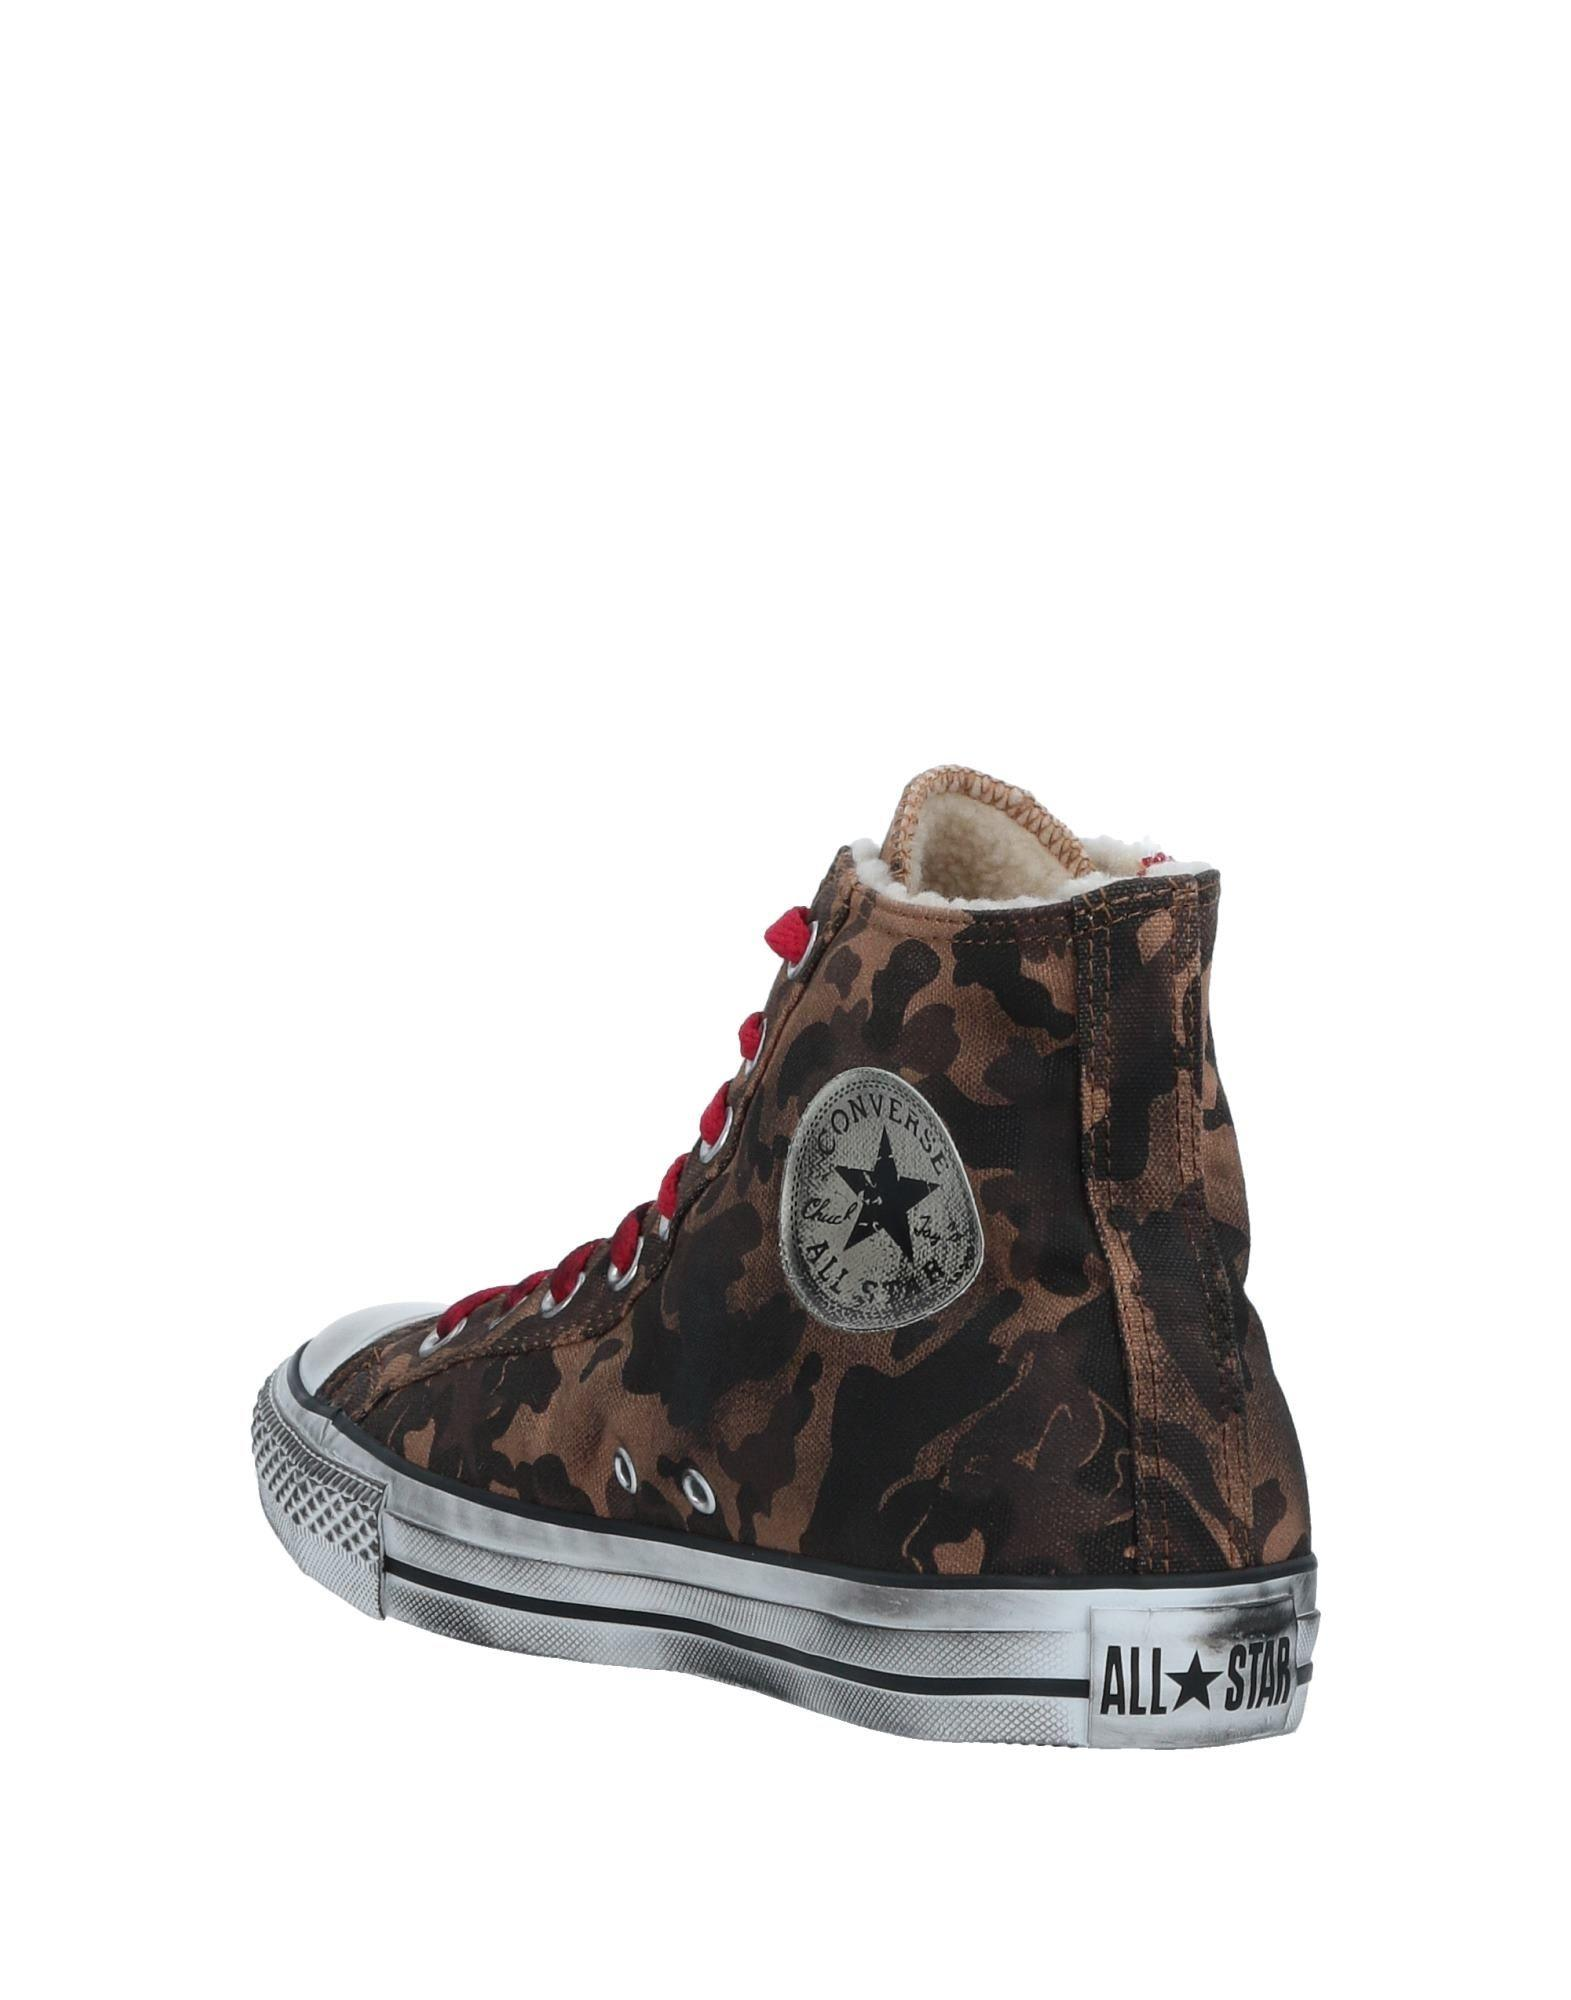 dc023163a847 Converse High-tops   Sneakers for Men - Lyst